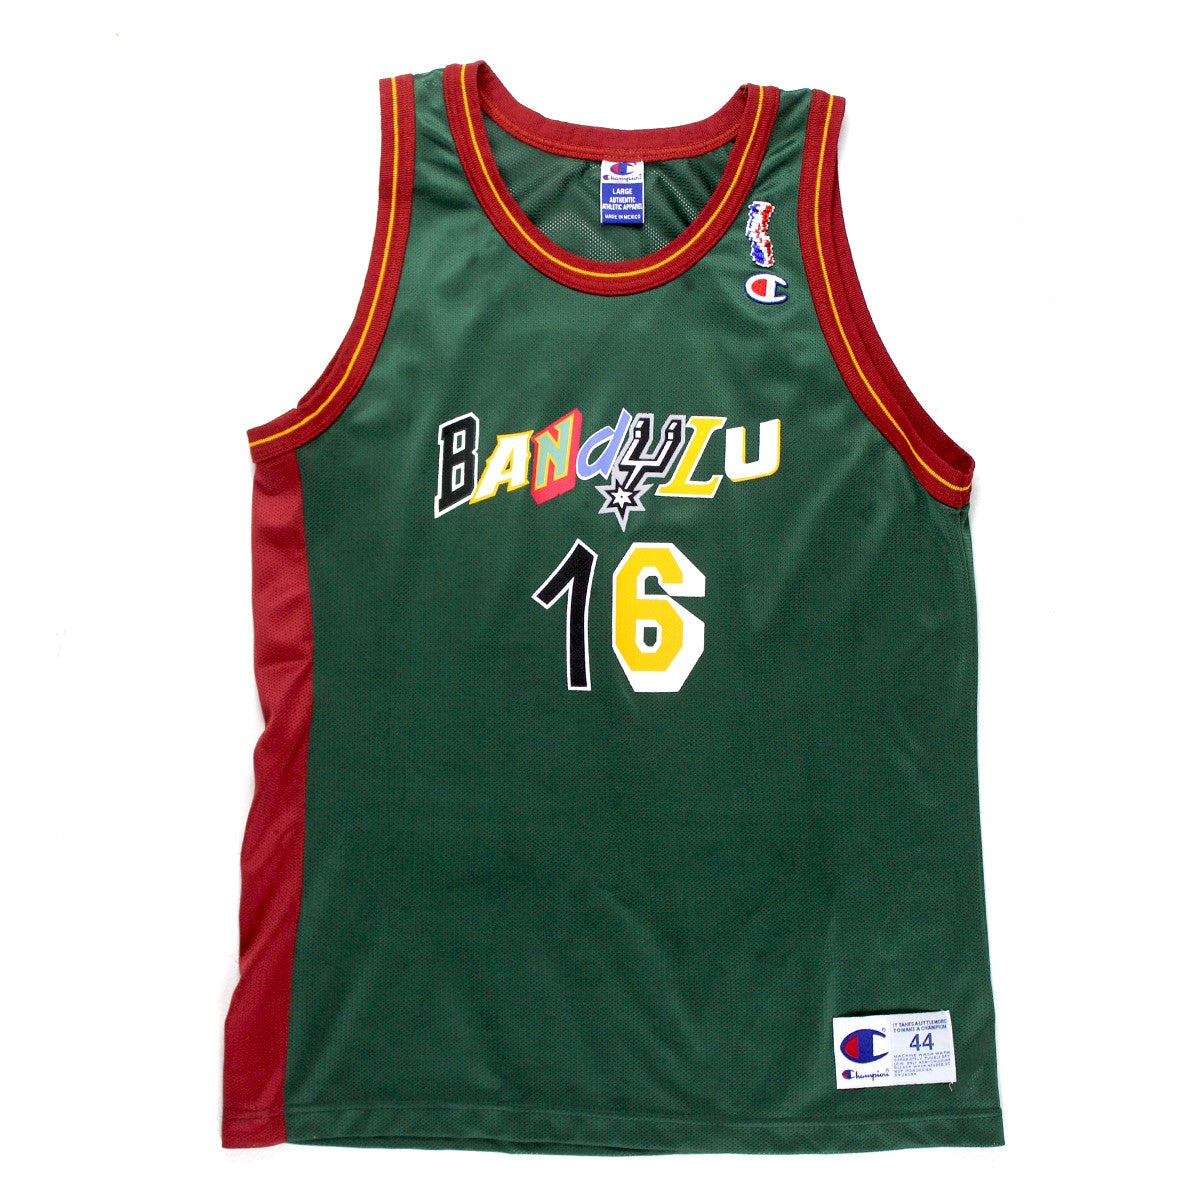 "BANDULU ""NBA JAM"" CHAMPION GRAPHIC JERSEY"